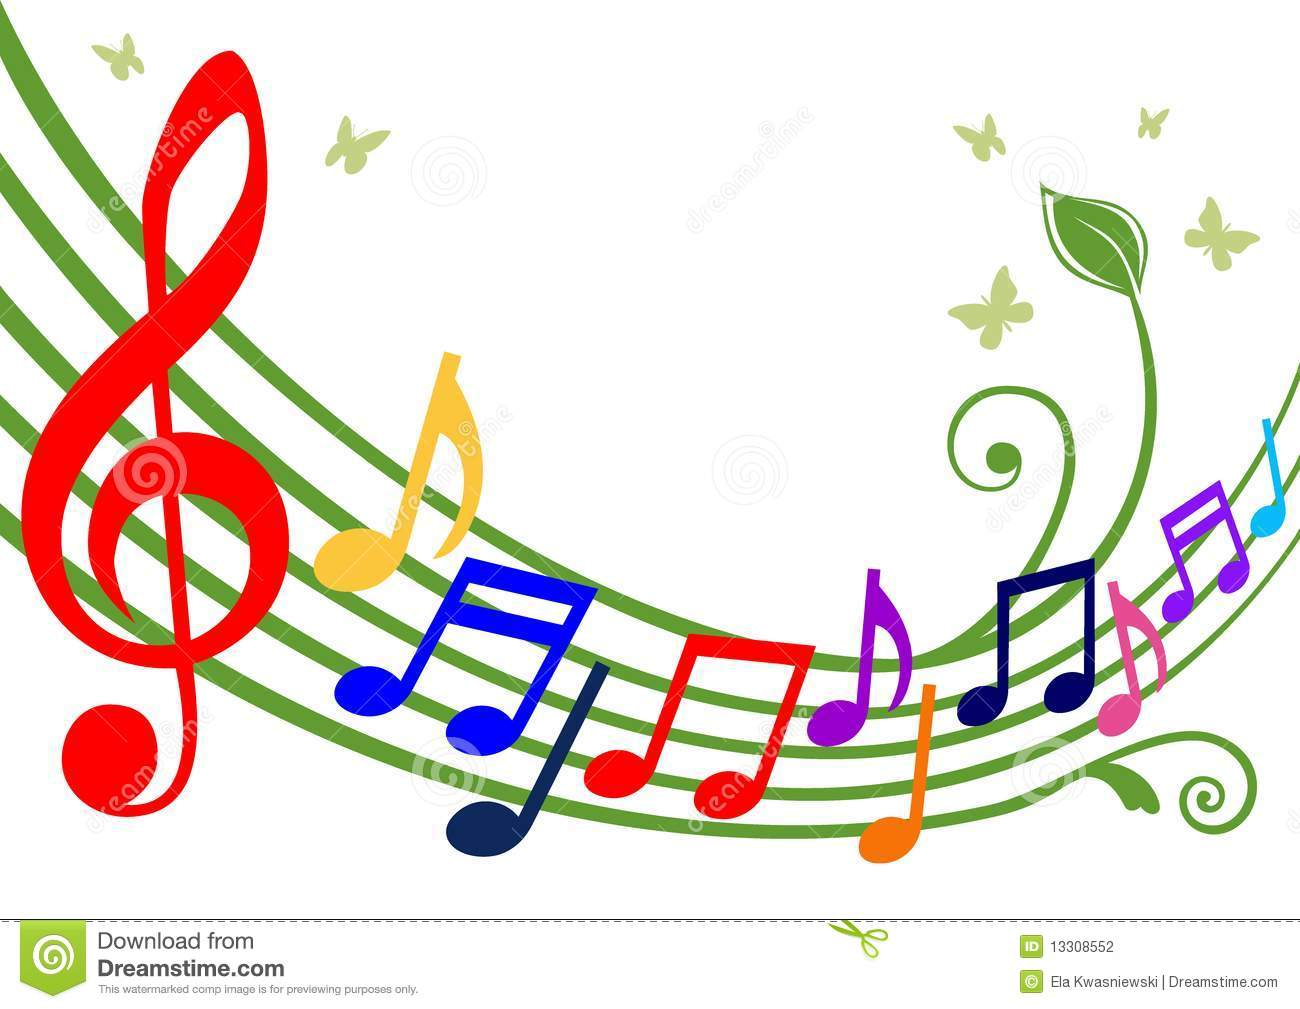 Music theme - dancing colorful notes on white background. Full